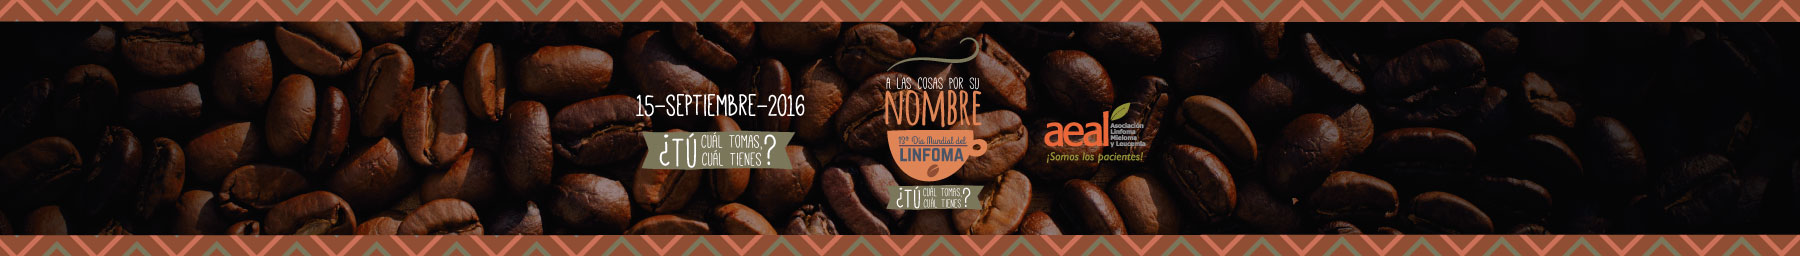 banner-web-linfoma-aeal-2016